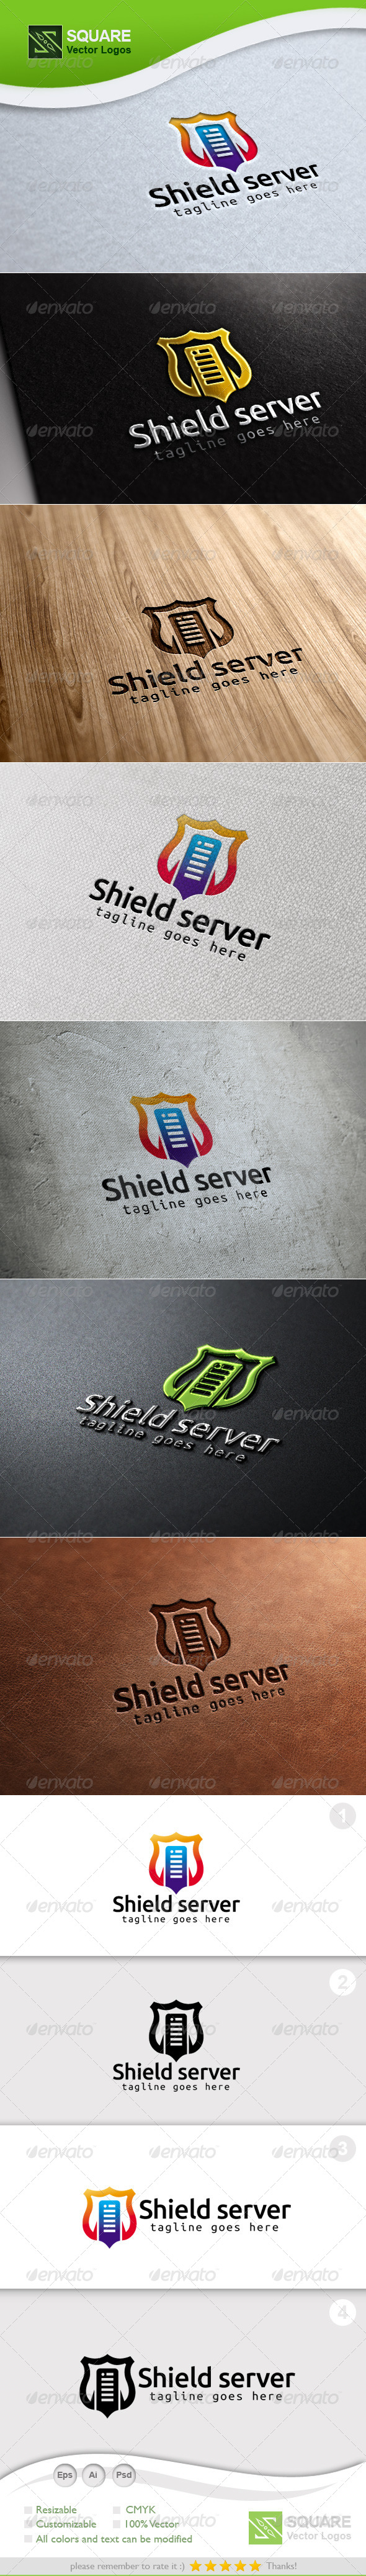 Shield, Server Vector Logo Template - Symbols Logo Templates